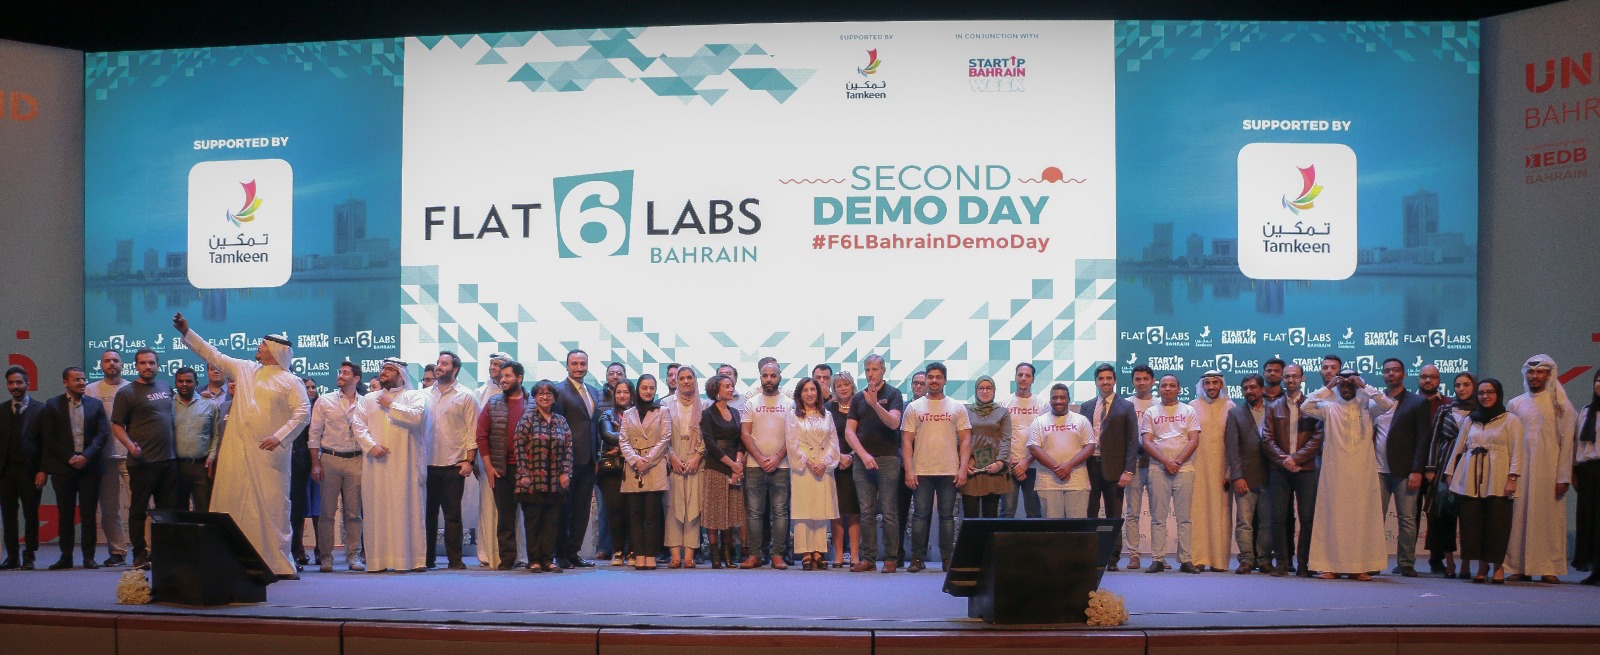 8 local and international startups steal the show at Flat6Labs Bahrain's Demo Day 2.0